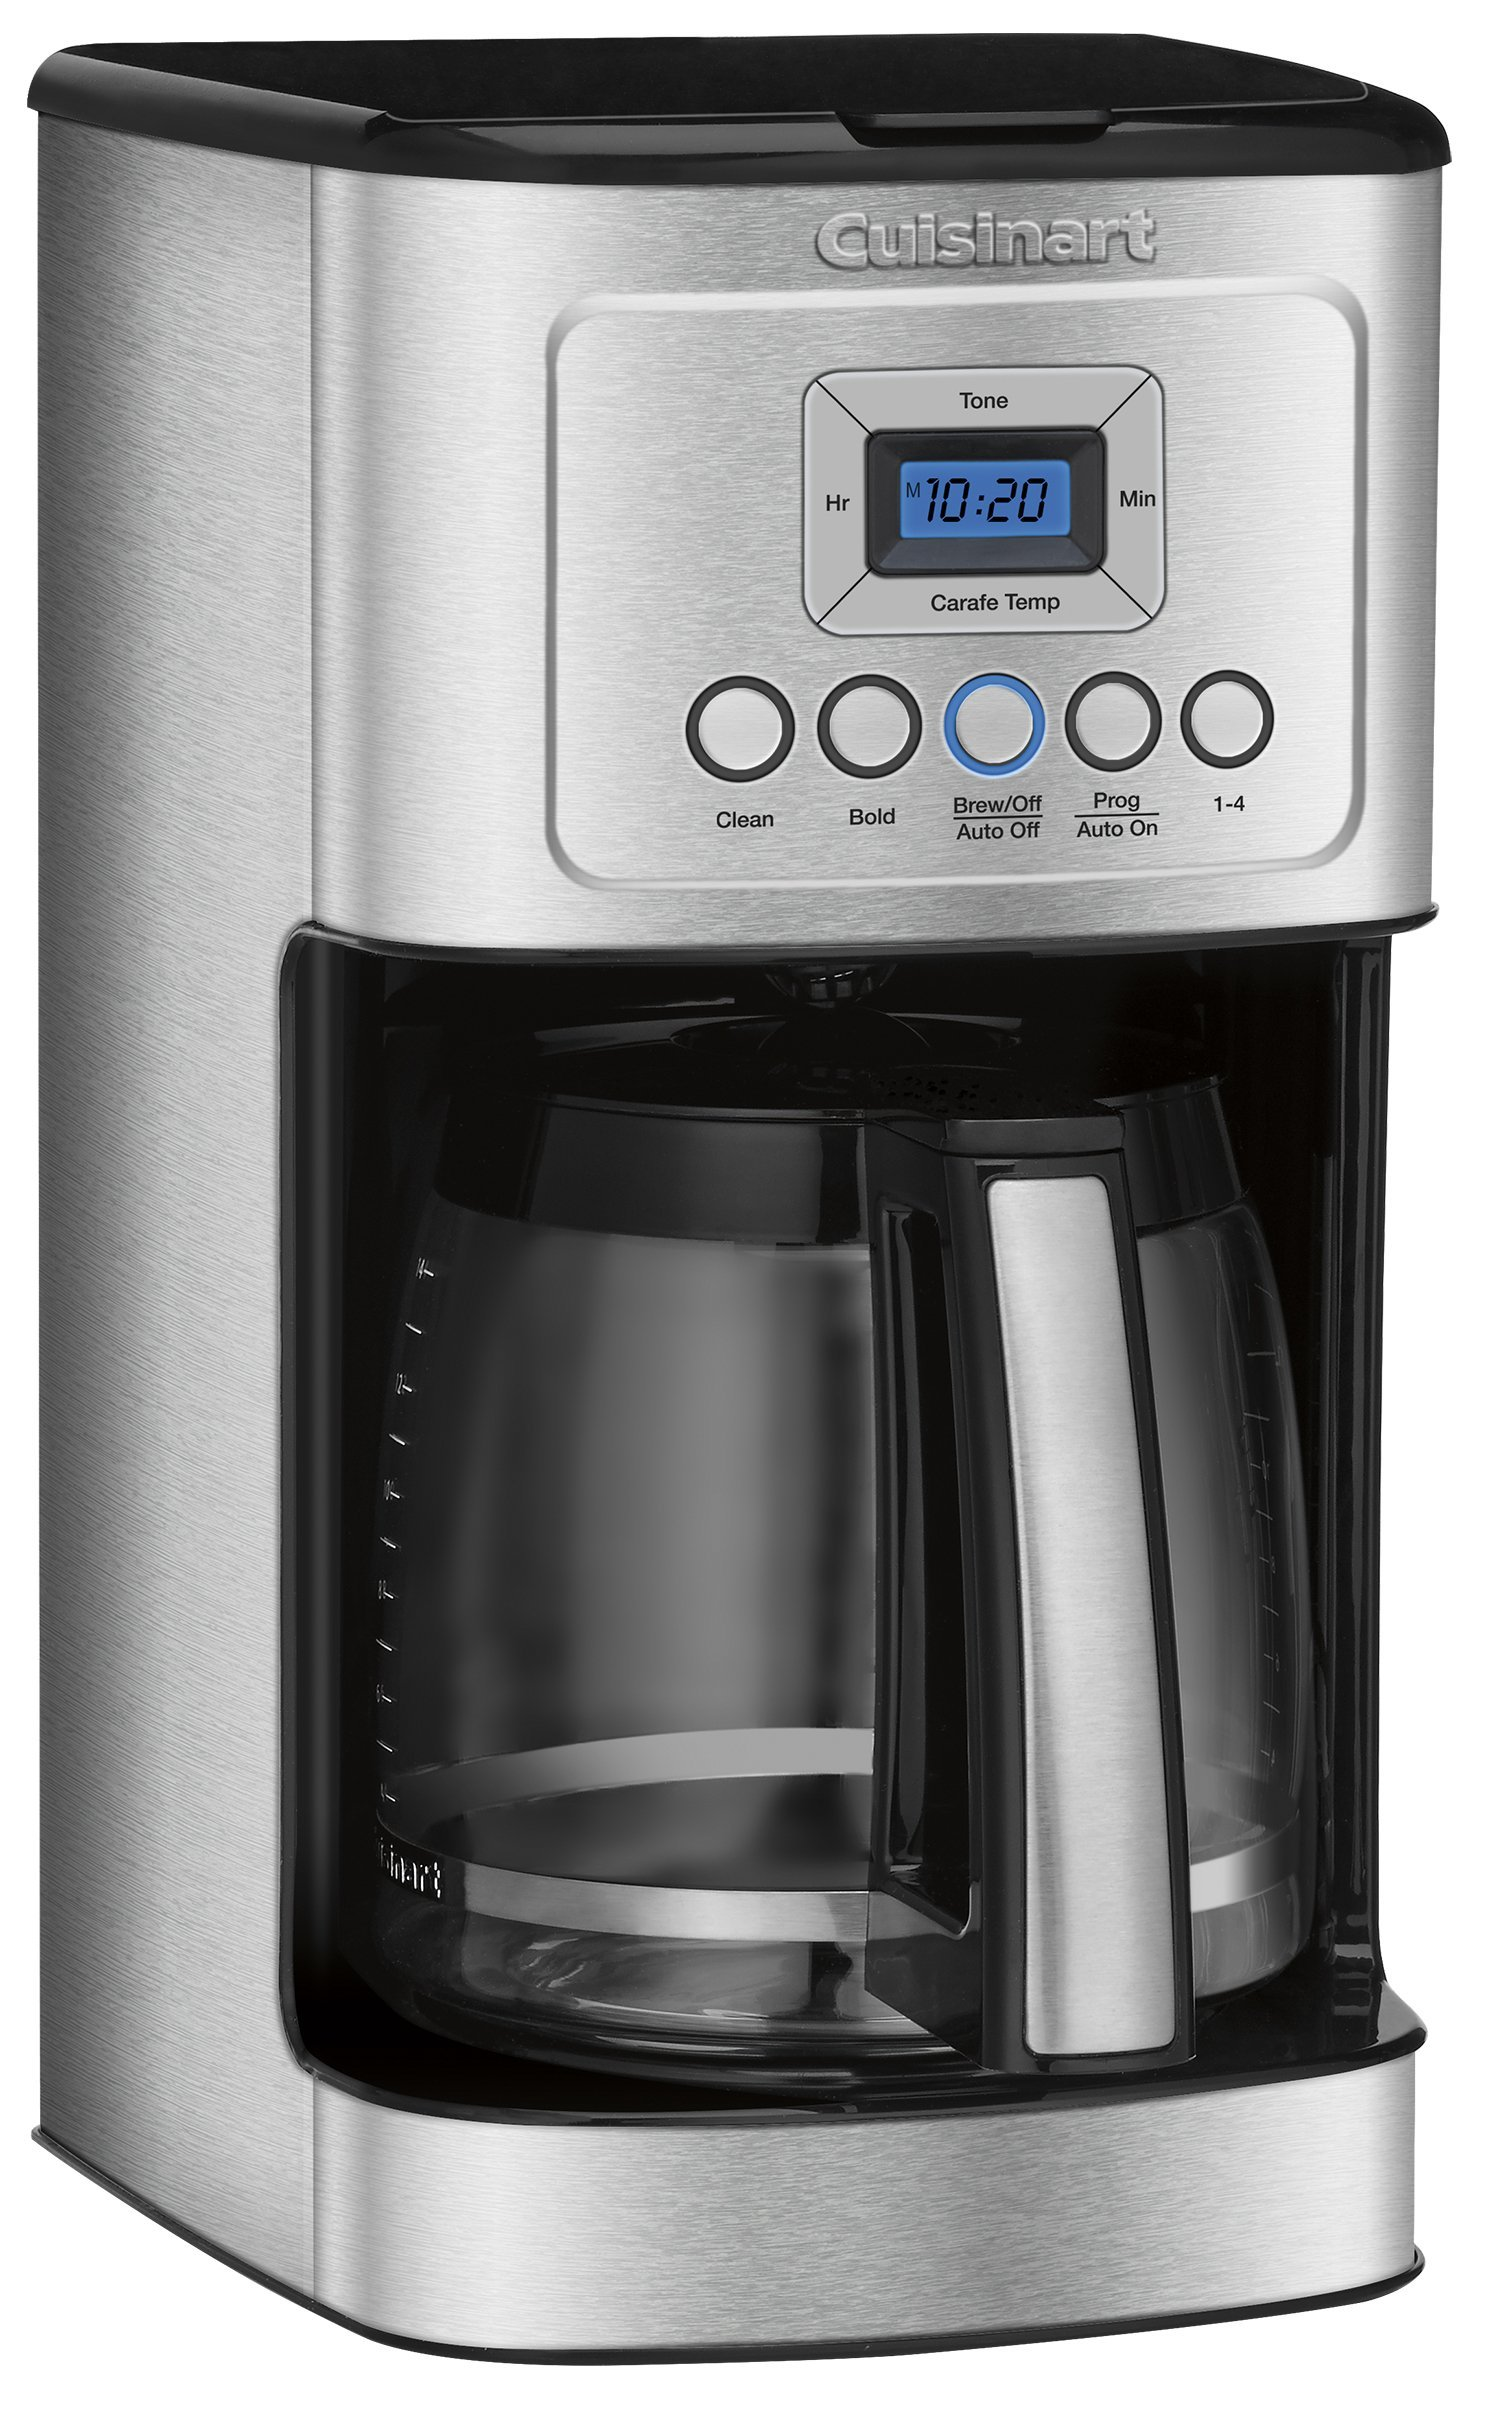 Cuisinart DCC-3200 14-Cup Glass Carafe with Stainless Steel Handle Programmable Coffeemaker, Silver by Cuisinart (Image #1)